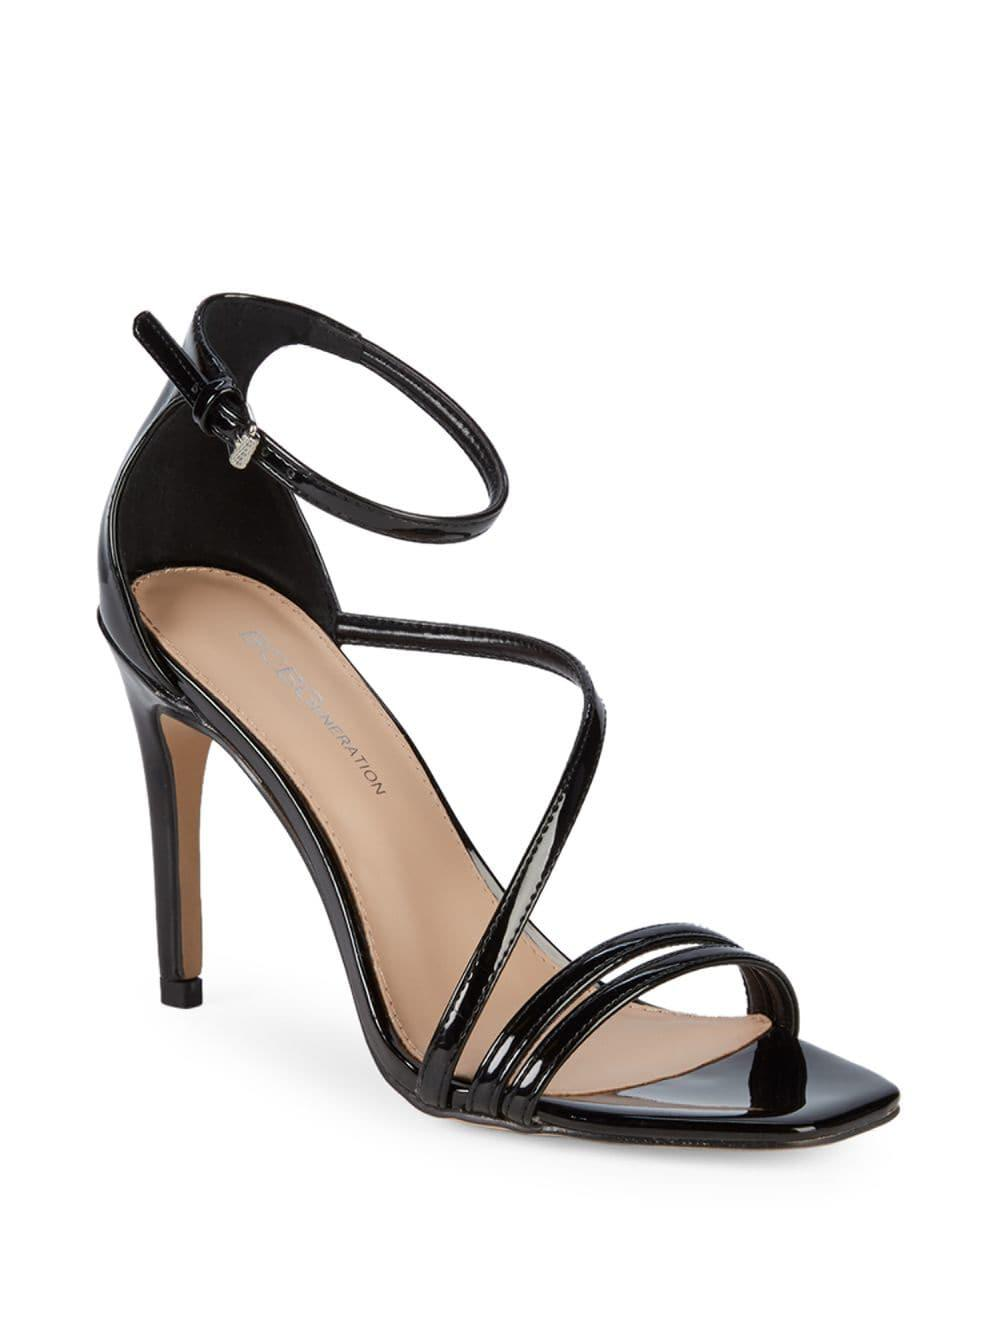 1d1fa513628 Lyst - BCBGeneration Isabel Patent Ankle-strap Stiletto Sandals in Black